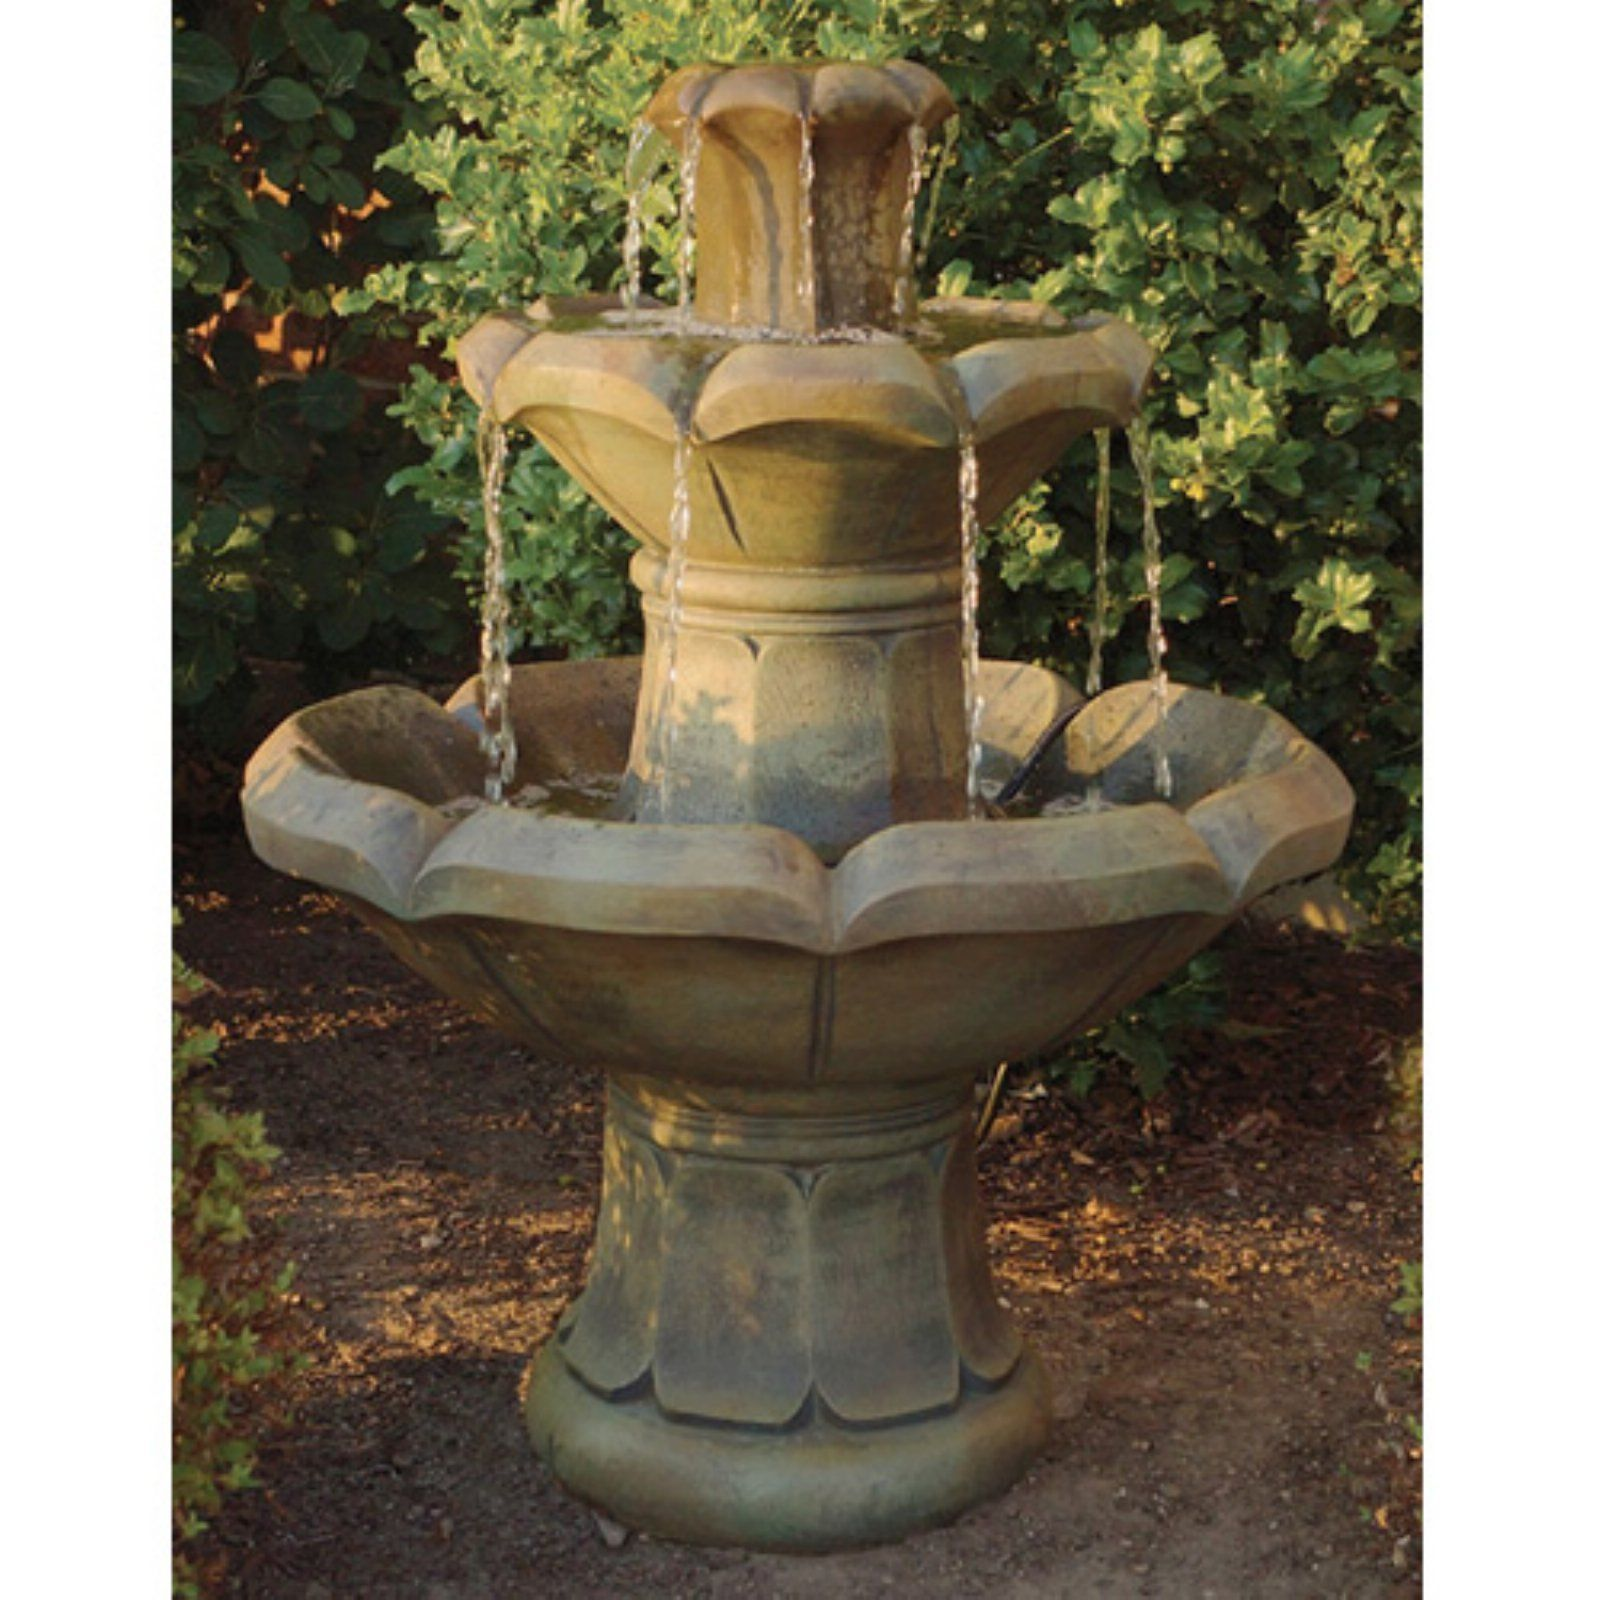 Henri Studio Montreux 2 Tier Outdoor Floor Fountain Trevia